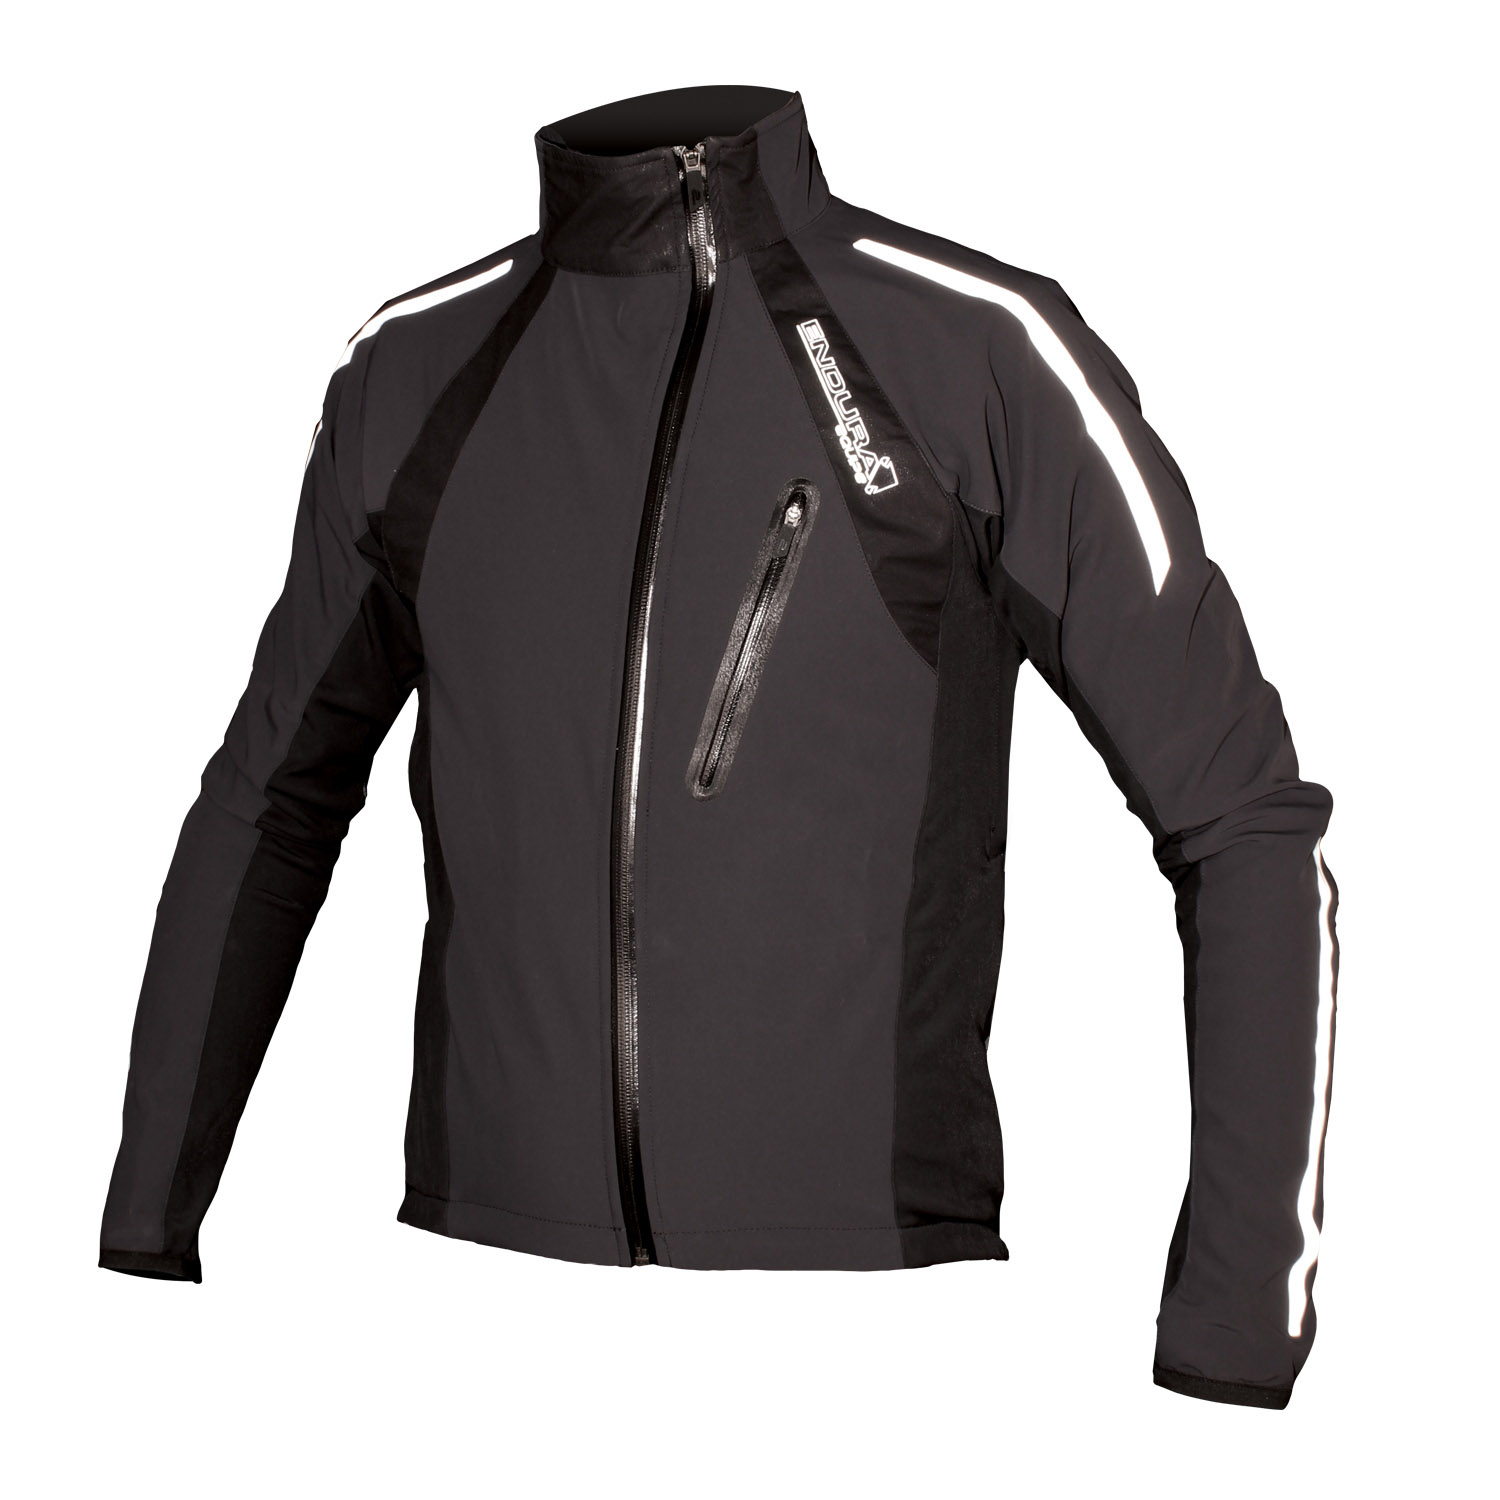 Equipe Thermo Windshield Jacket Black